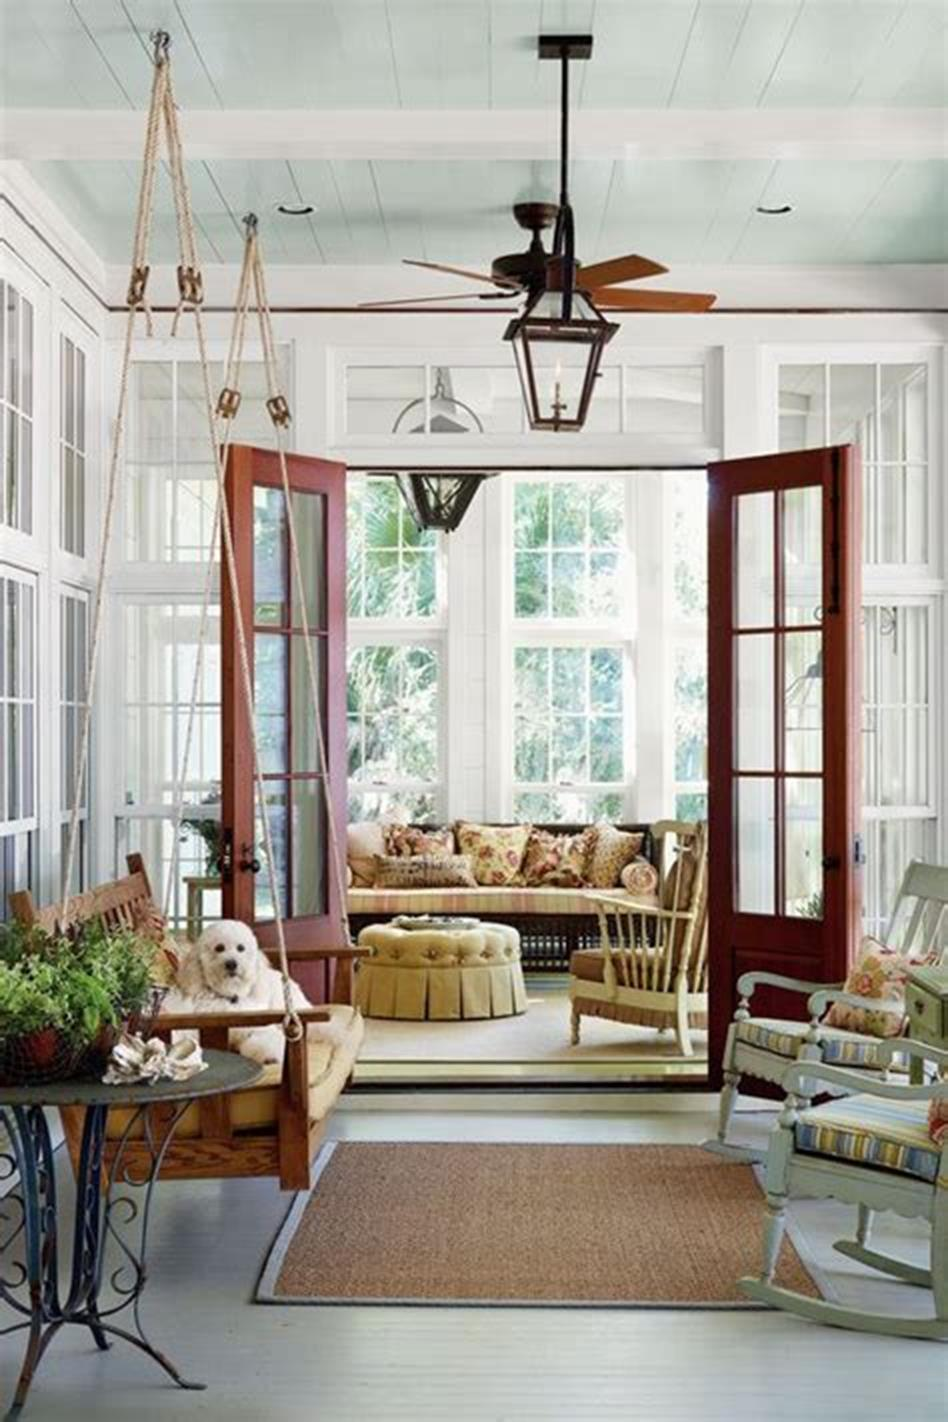 40 Best Screened Porch Design and Decorating Ideas On Budget 30